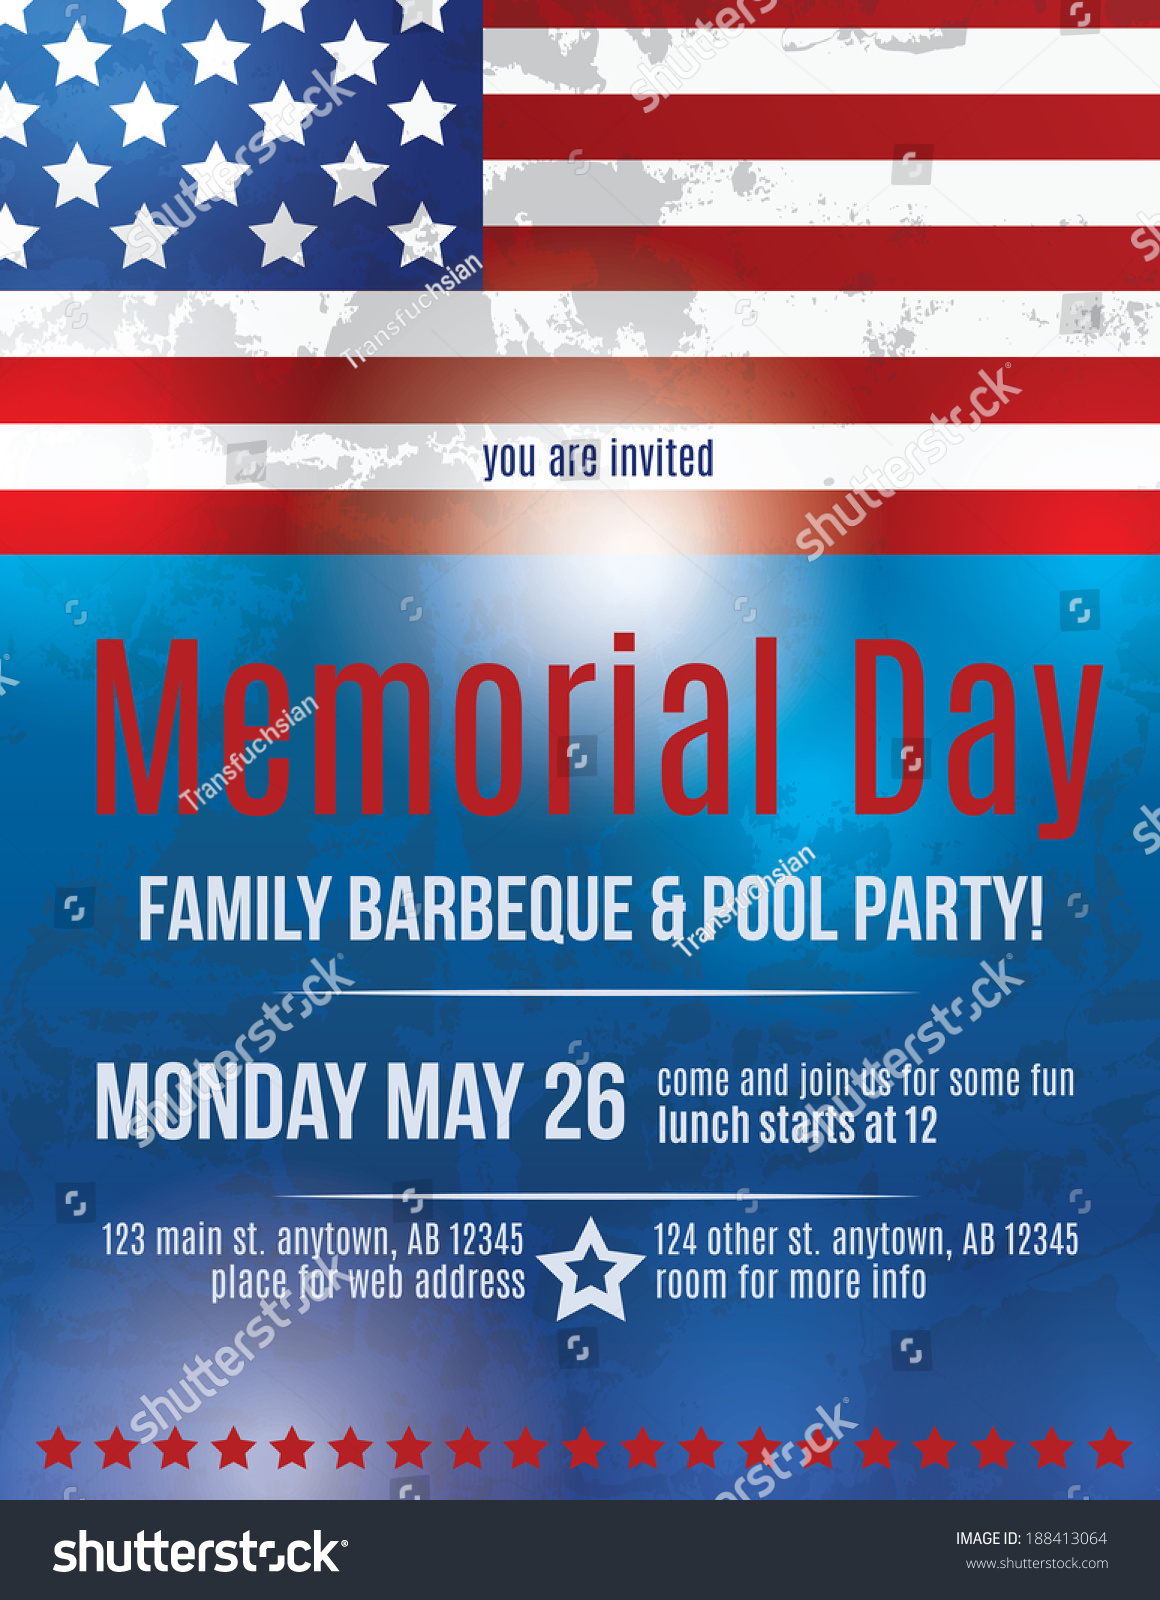 memorial day barbeque flyer background template with. Black Bedroom Furniture Sets. Home Design Ideas